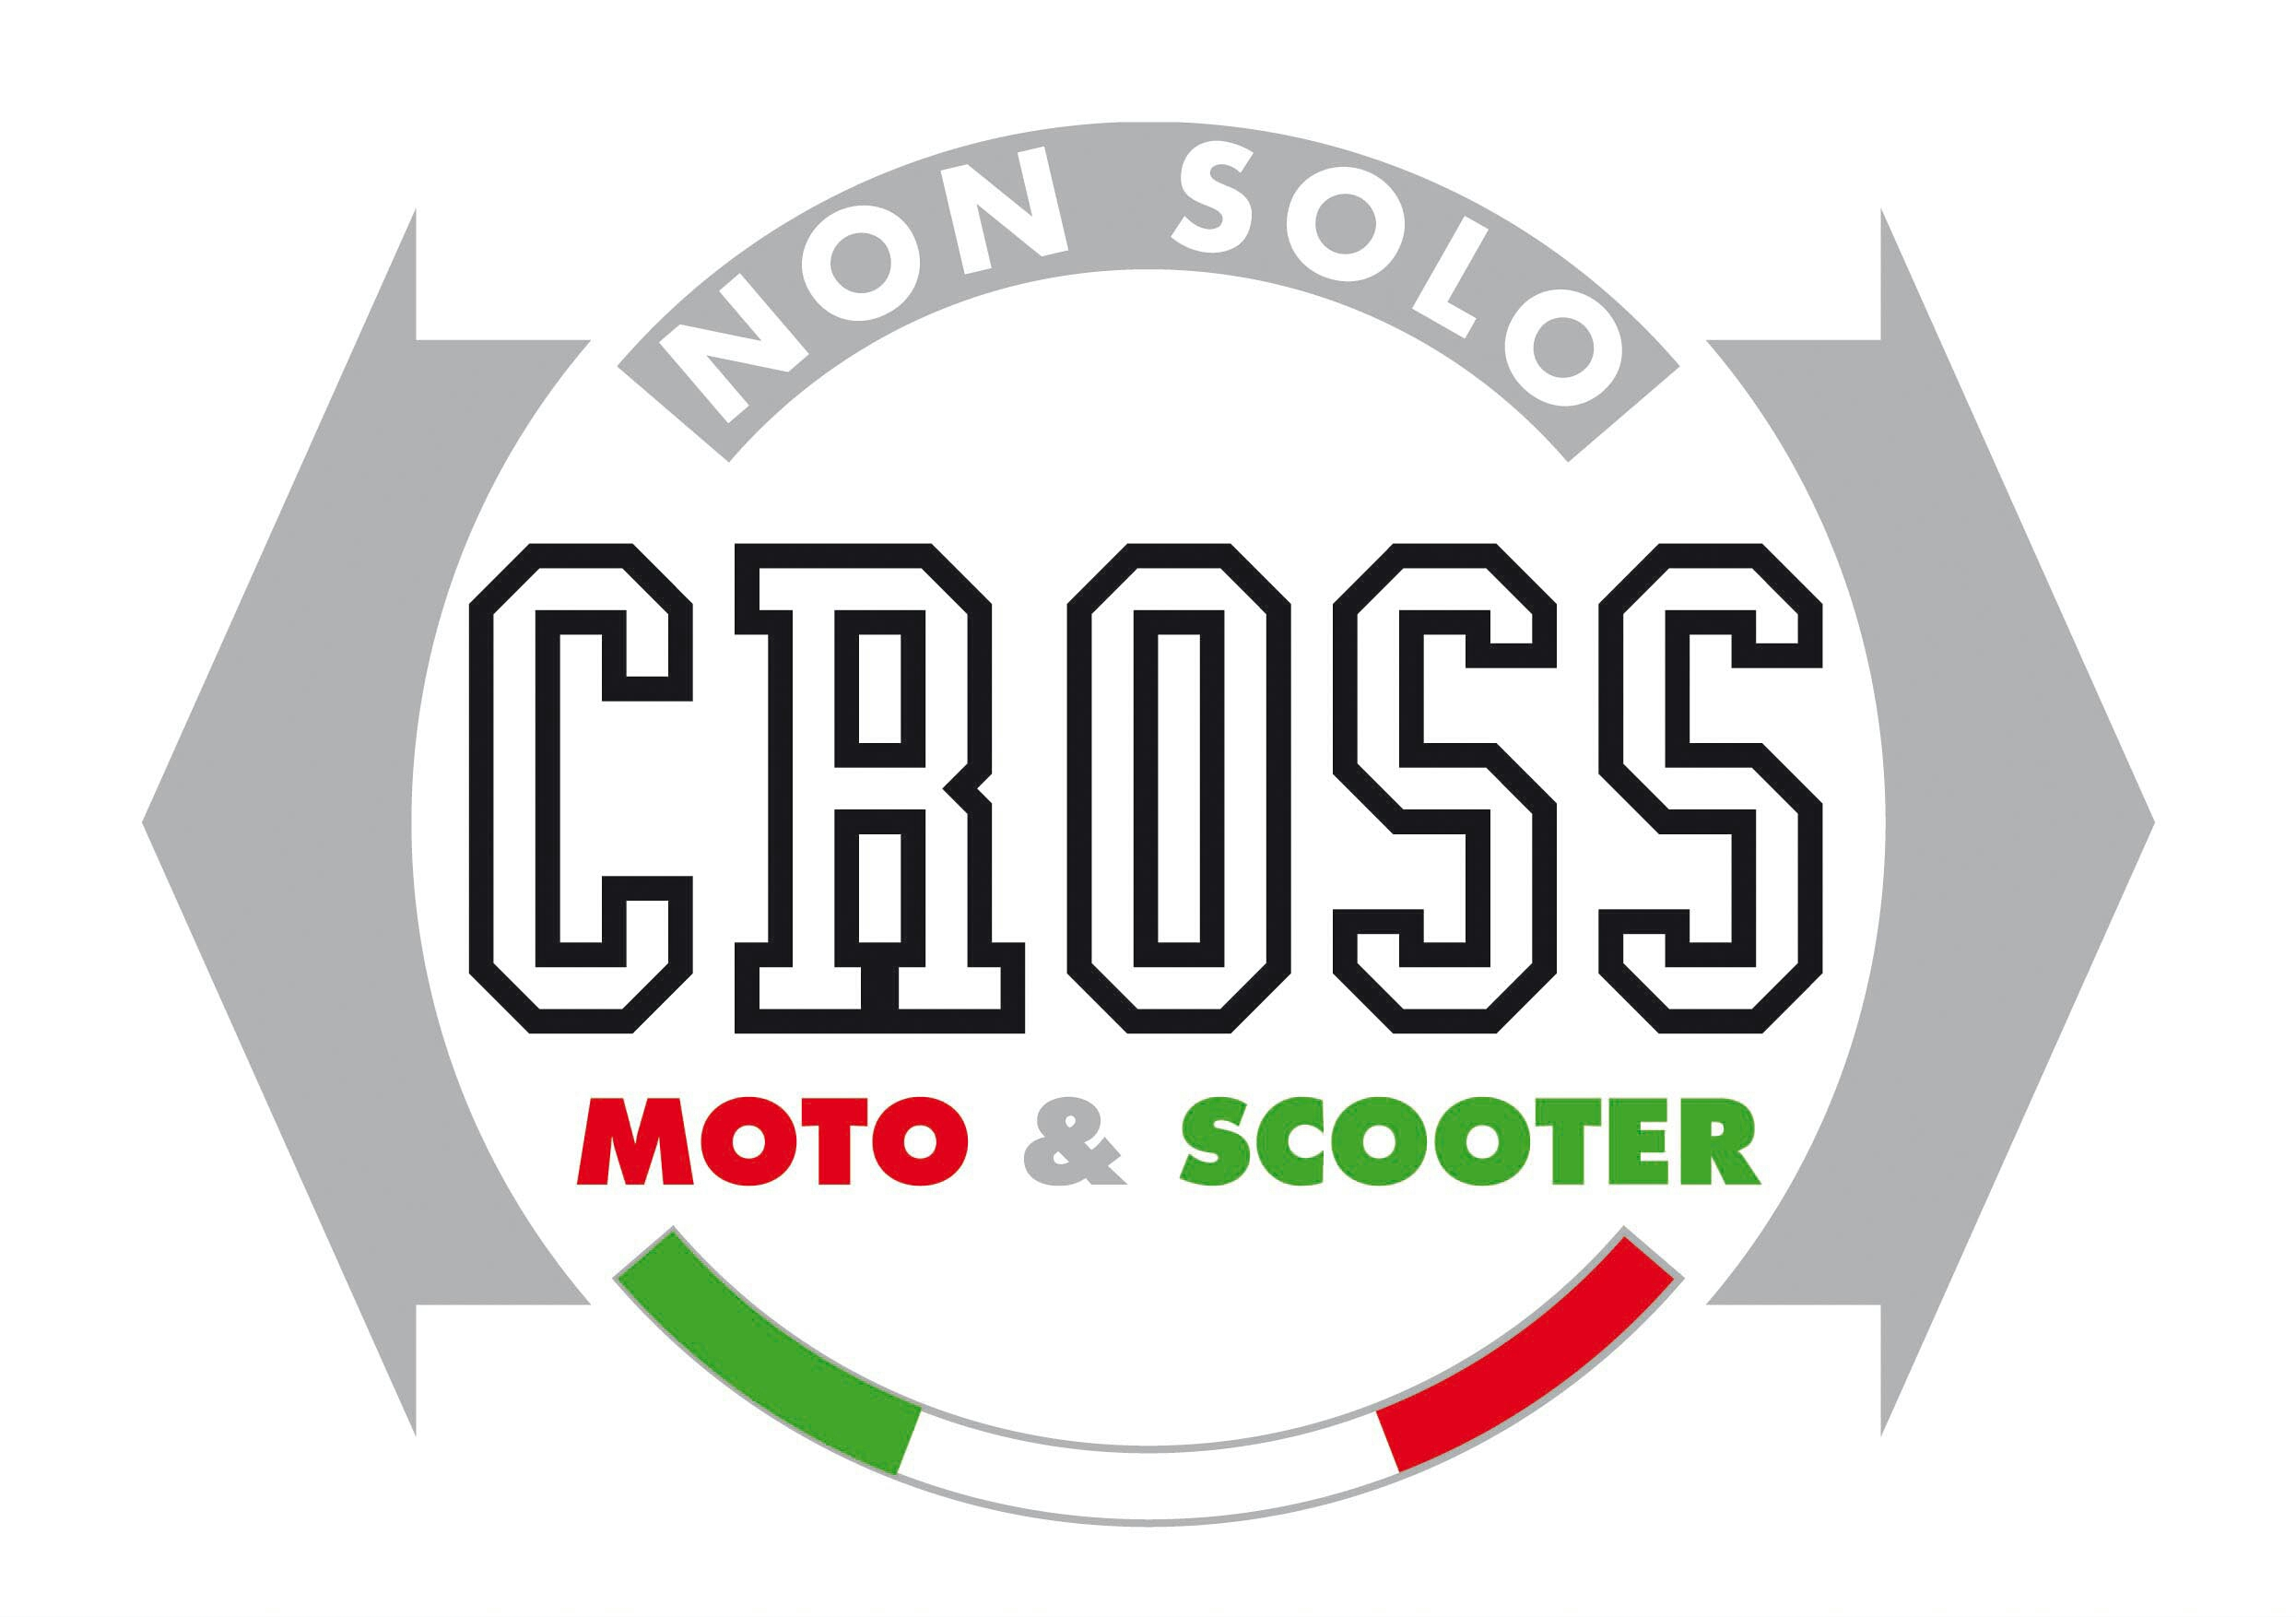 Nonsolocross Moto & Scooter